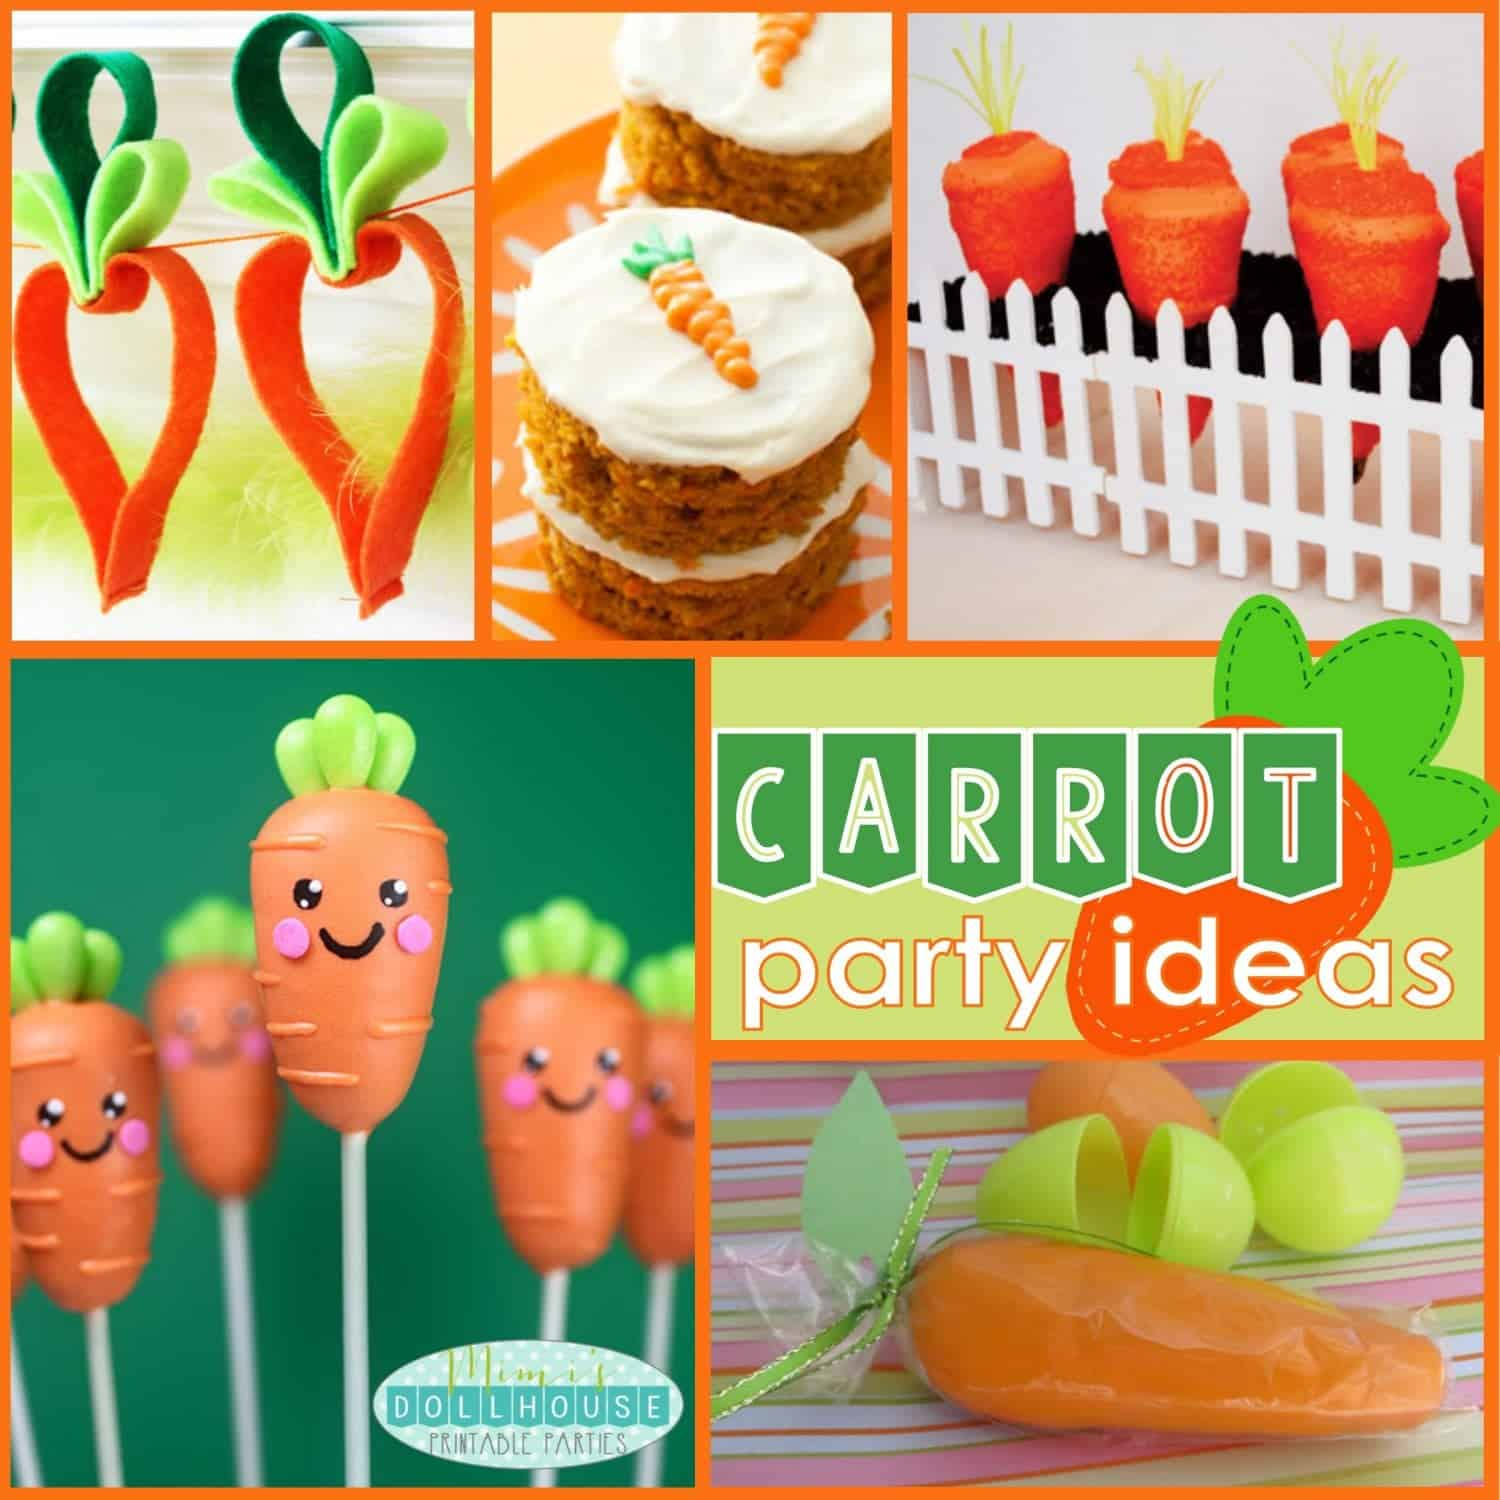 Easter: Creative Carrot Party Ideas for Easter